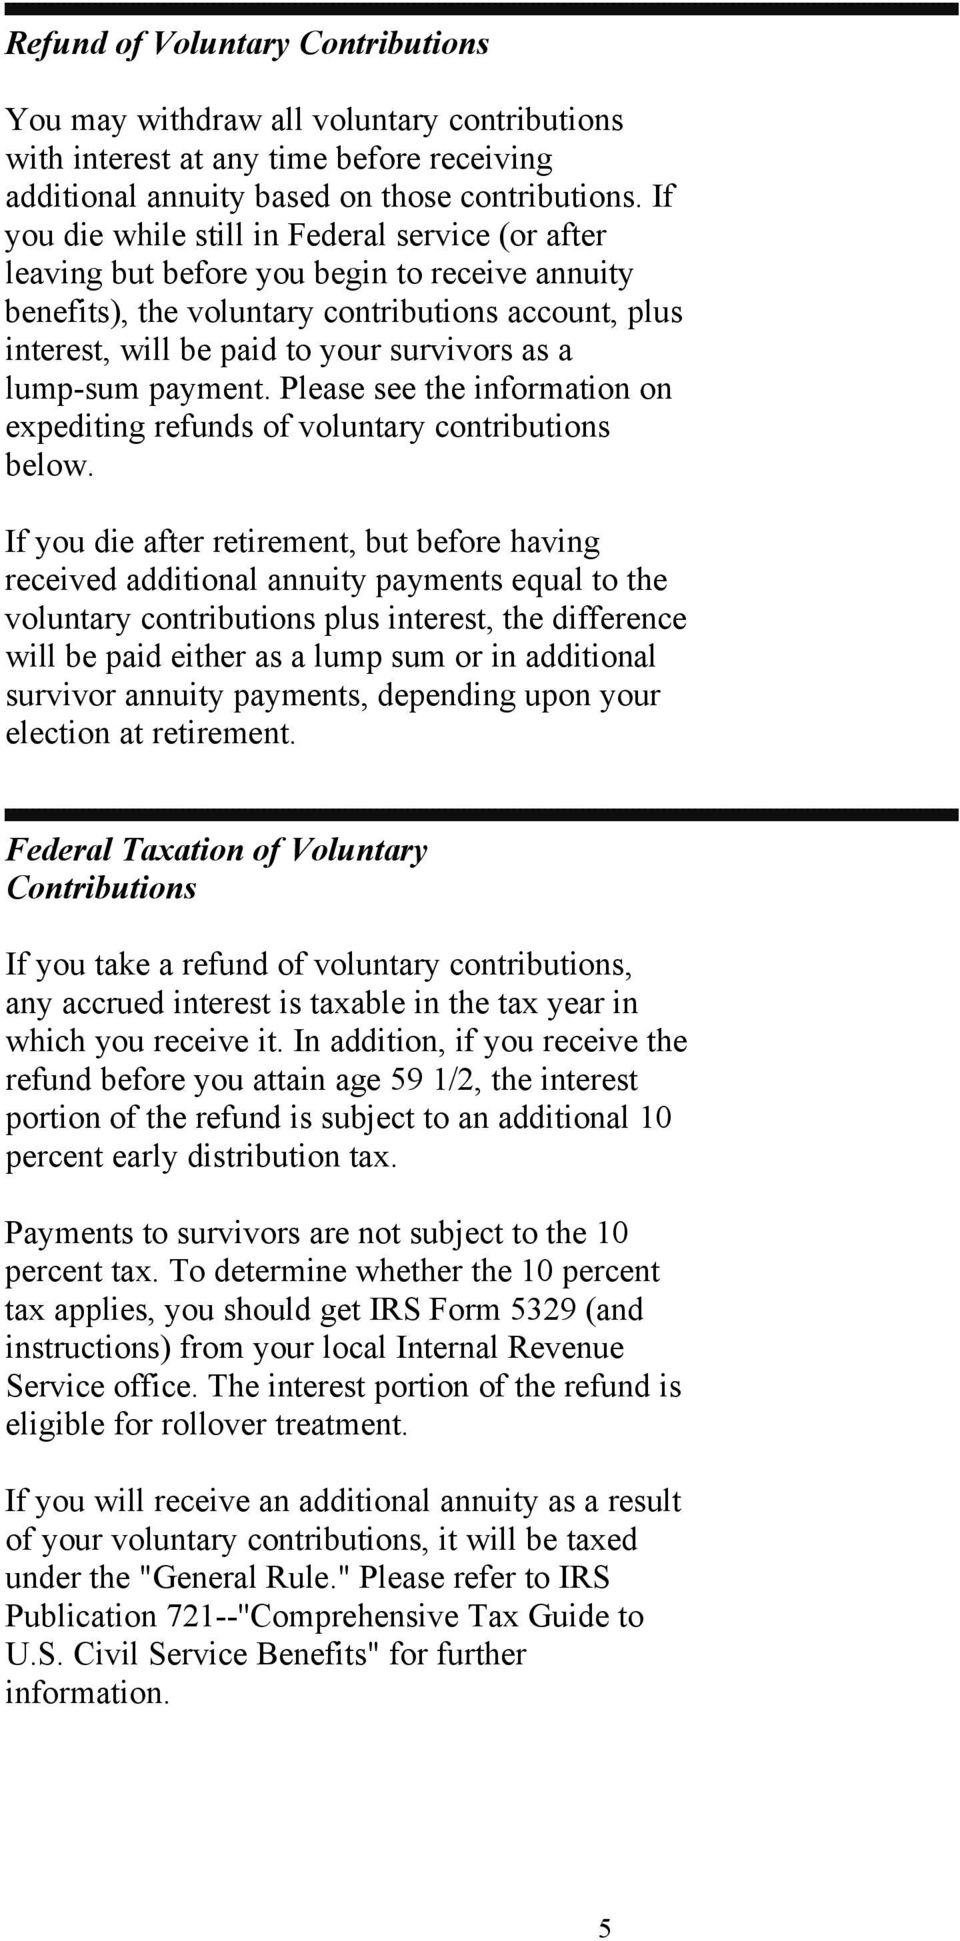 lump-sum payment. Please see the information on expediting refunds of voluntary contributions below.